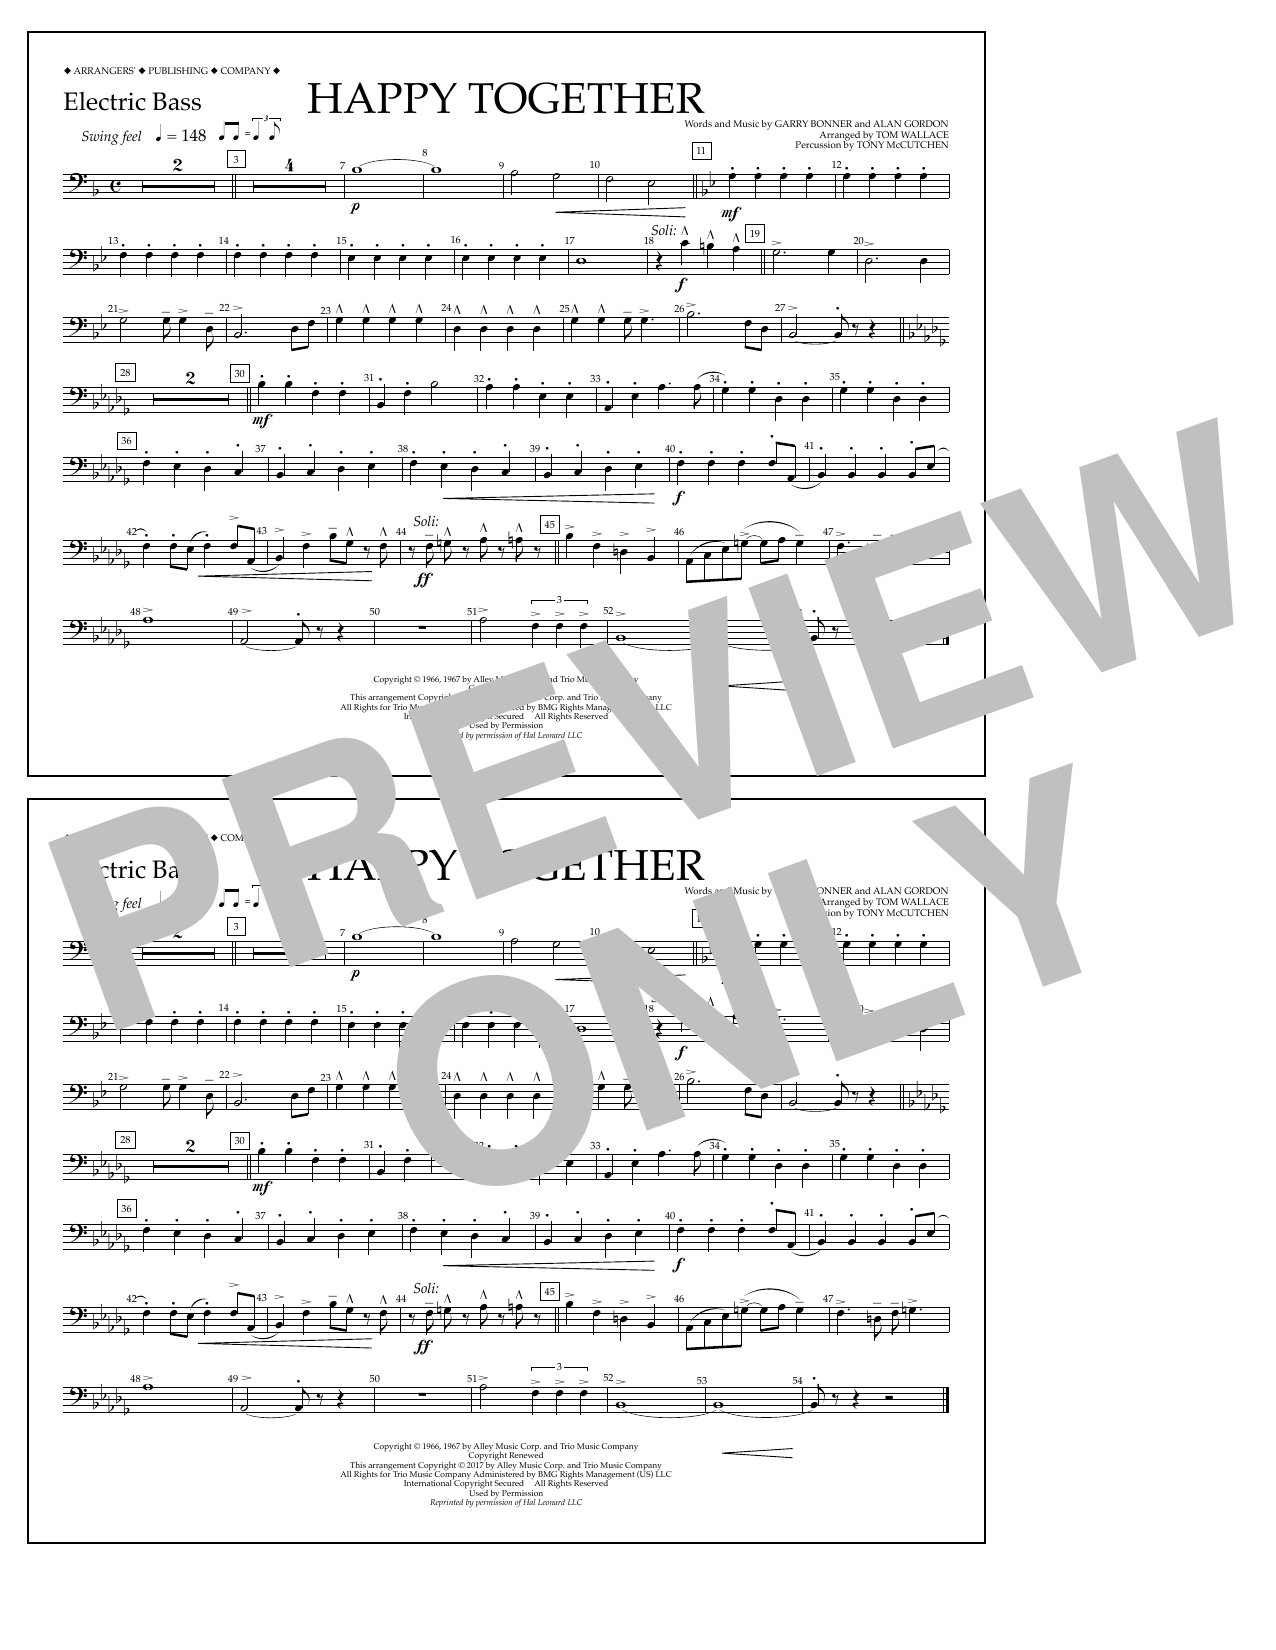 Happy Together - Electric Bass Sheet Music